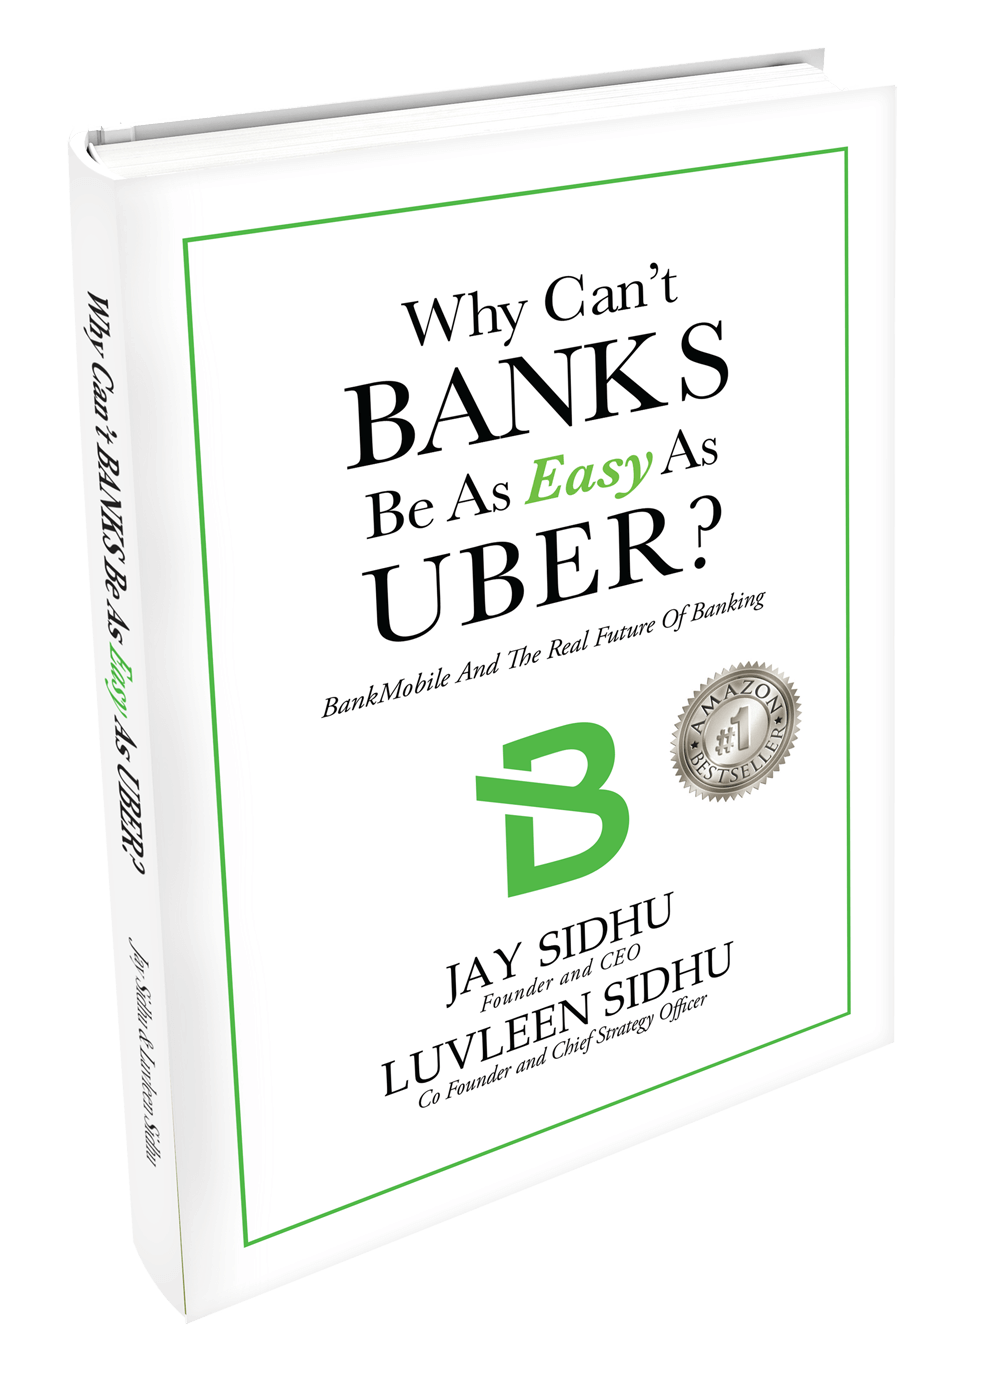 Why Can't Banks Be As Easy As Uber? Book Cover